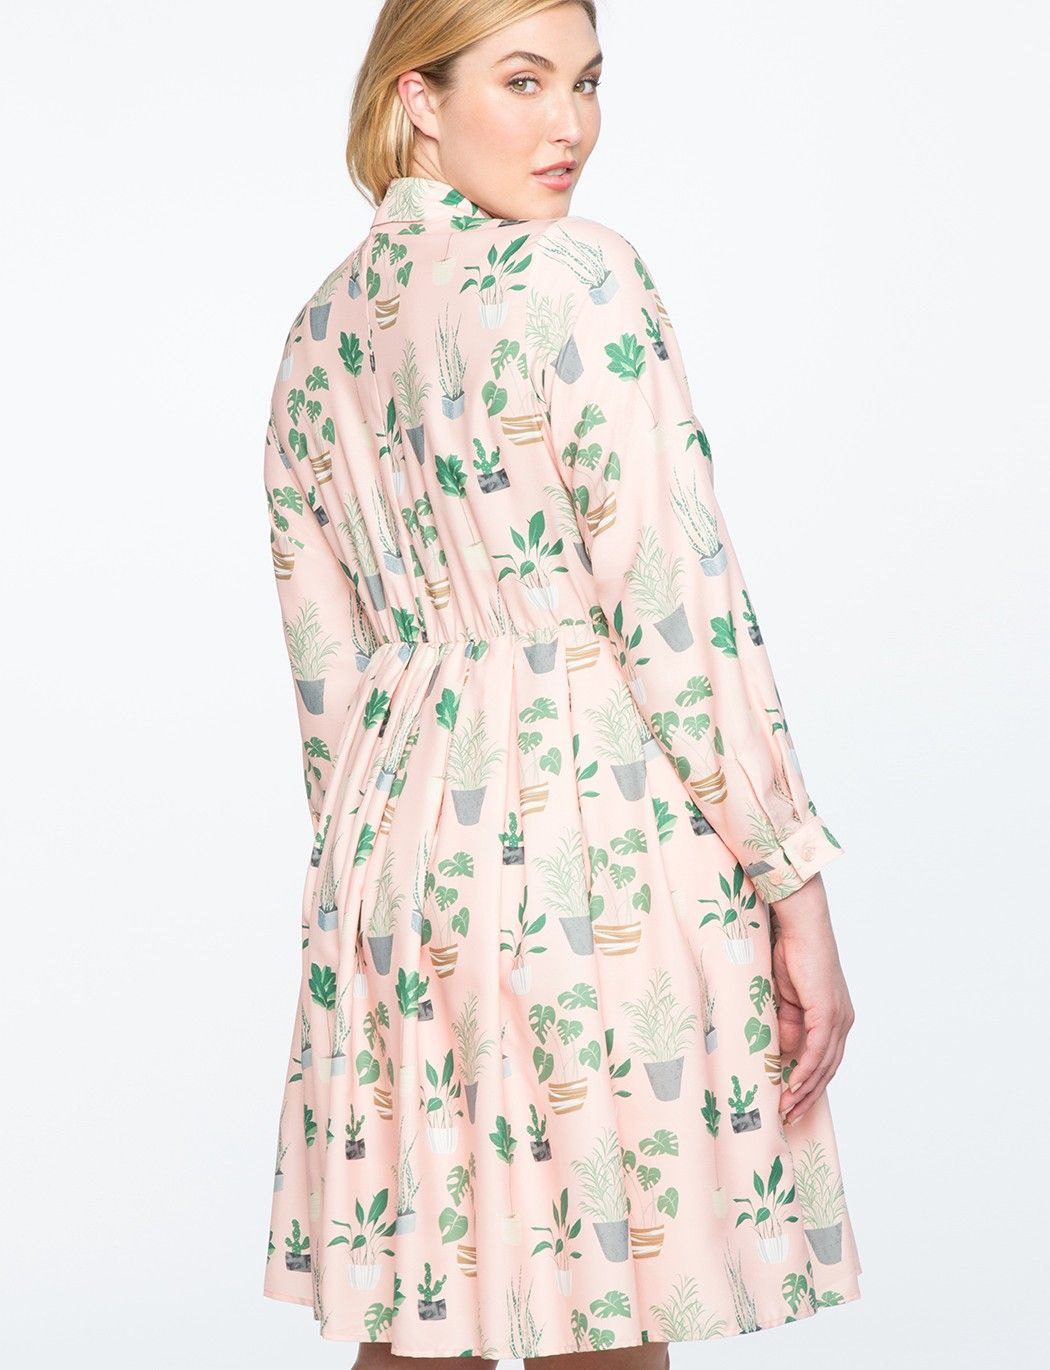 dd0cfb76ec7 Eloquii Long Sleeve Printed Fit And Flare Dress - The Secret Life Of Plants  28